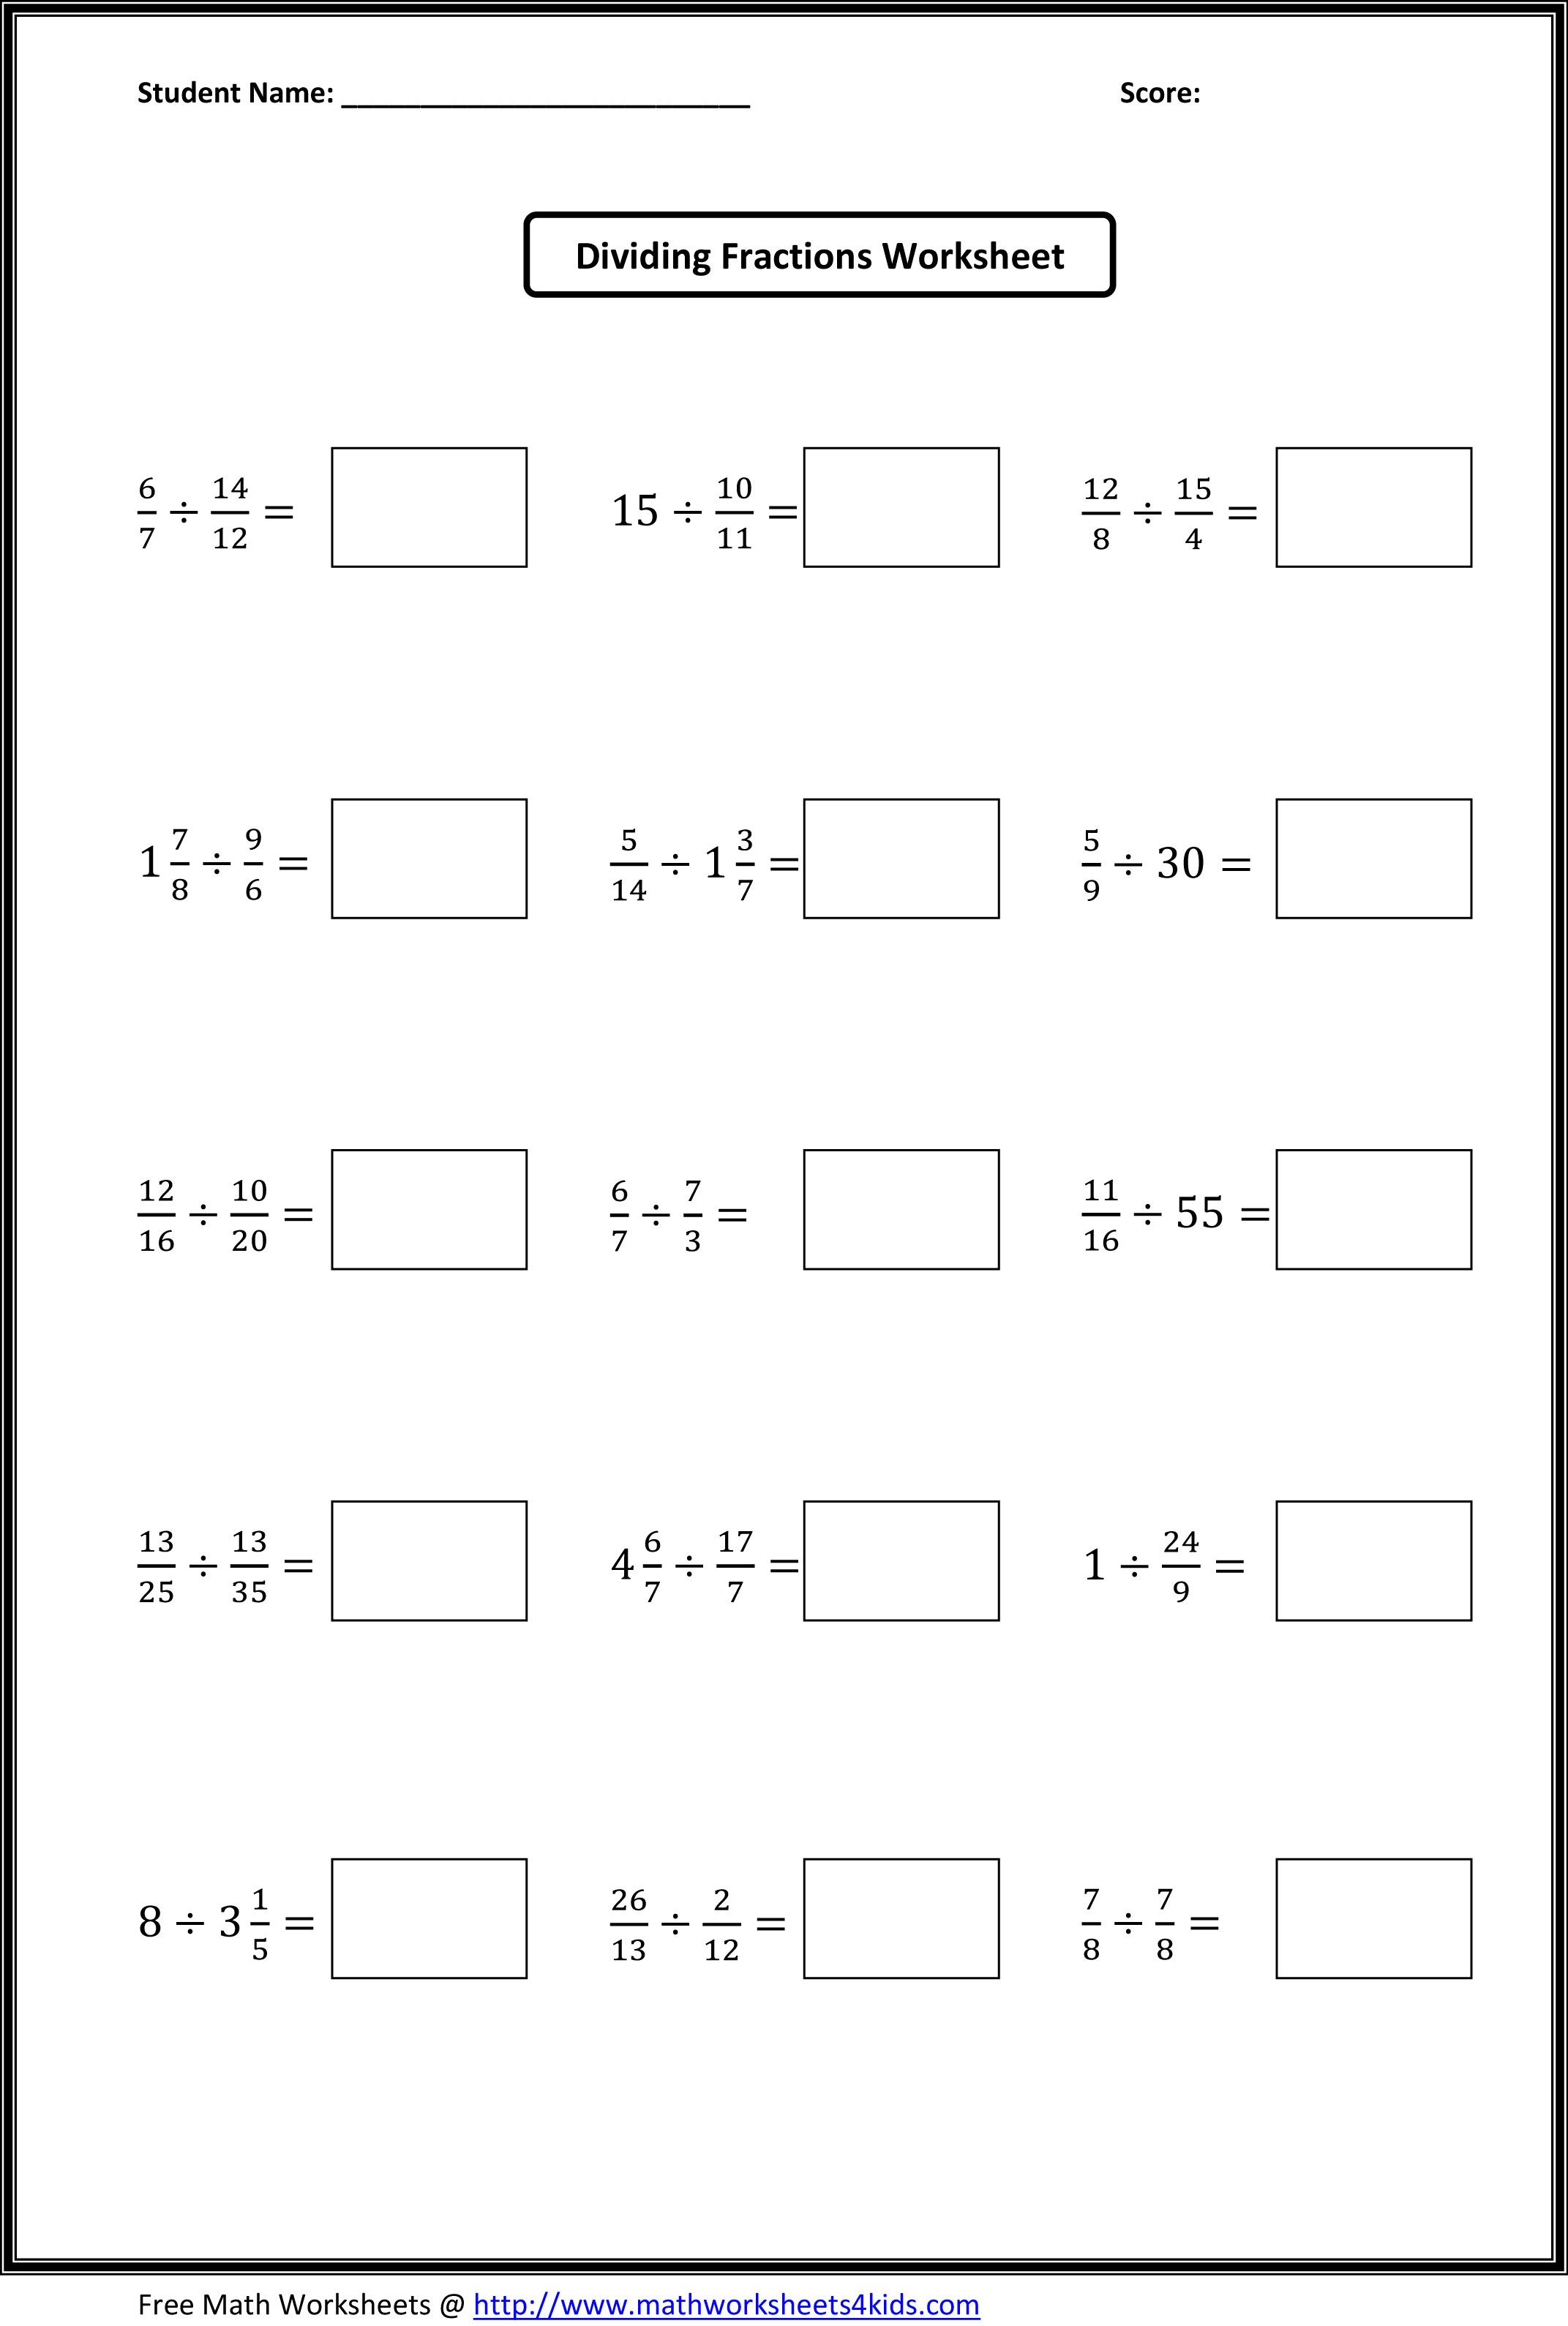 Dividing Fractions Worksheets Fractions worksheets, Math